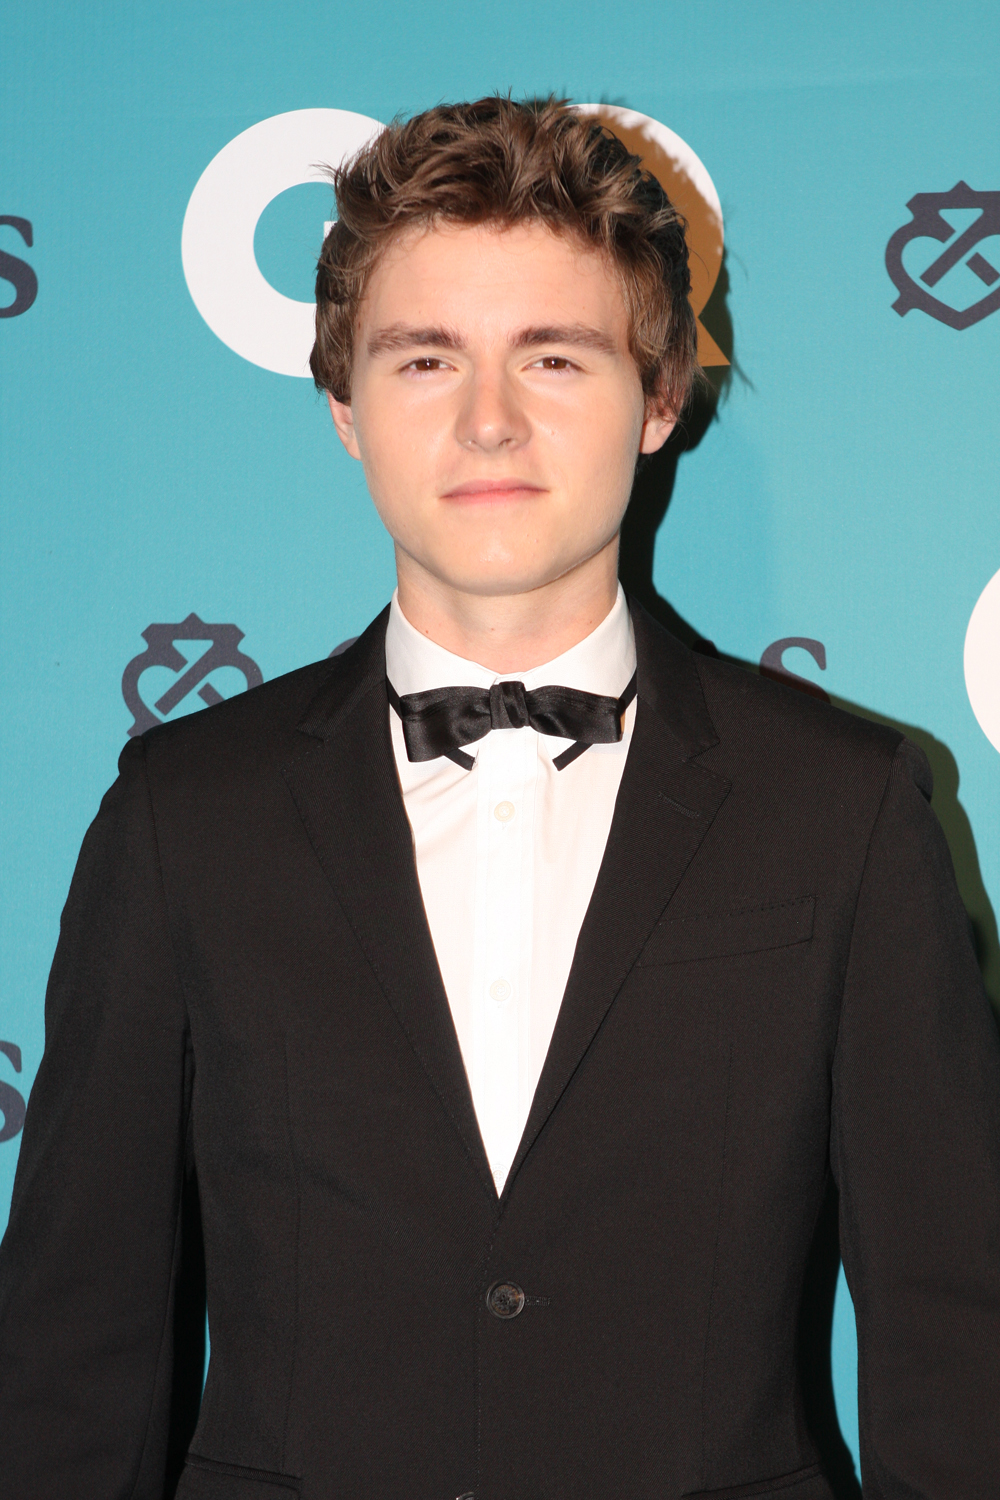 callan mcauliffe instagramcallan mcauliffe instagram, callan mcauliffe and madeline carroll, callan mcauliffe twitter, callan mcauliffe wdw, callan mcauliffe movies, callan mcauliffe wiki, callan mcauliffe filmography, callan mcauliffe y madeline carroll, callan mcauliffe great gatsby, callan mcauliffe interview, callan mcauliffe height, callan mcauliffe snapchat, callan mcauliffe and madeline carroll relationship, callan mcauliffe 2015, callan mcauliffe flipped, callan mcauliffe 2014, callan mcauliffe tumblr, callan mcauliffe 2016, callan mcauliffe facebook, callan mcauliffe imdb